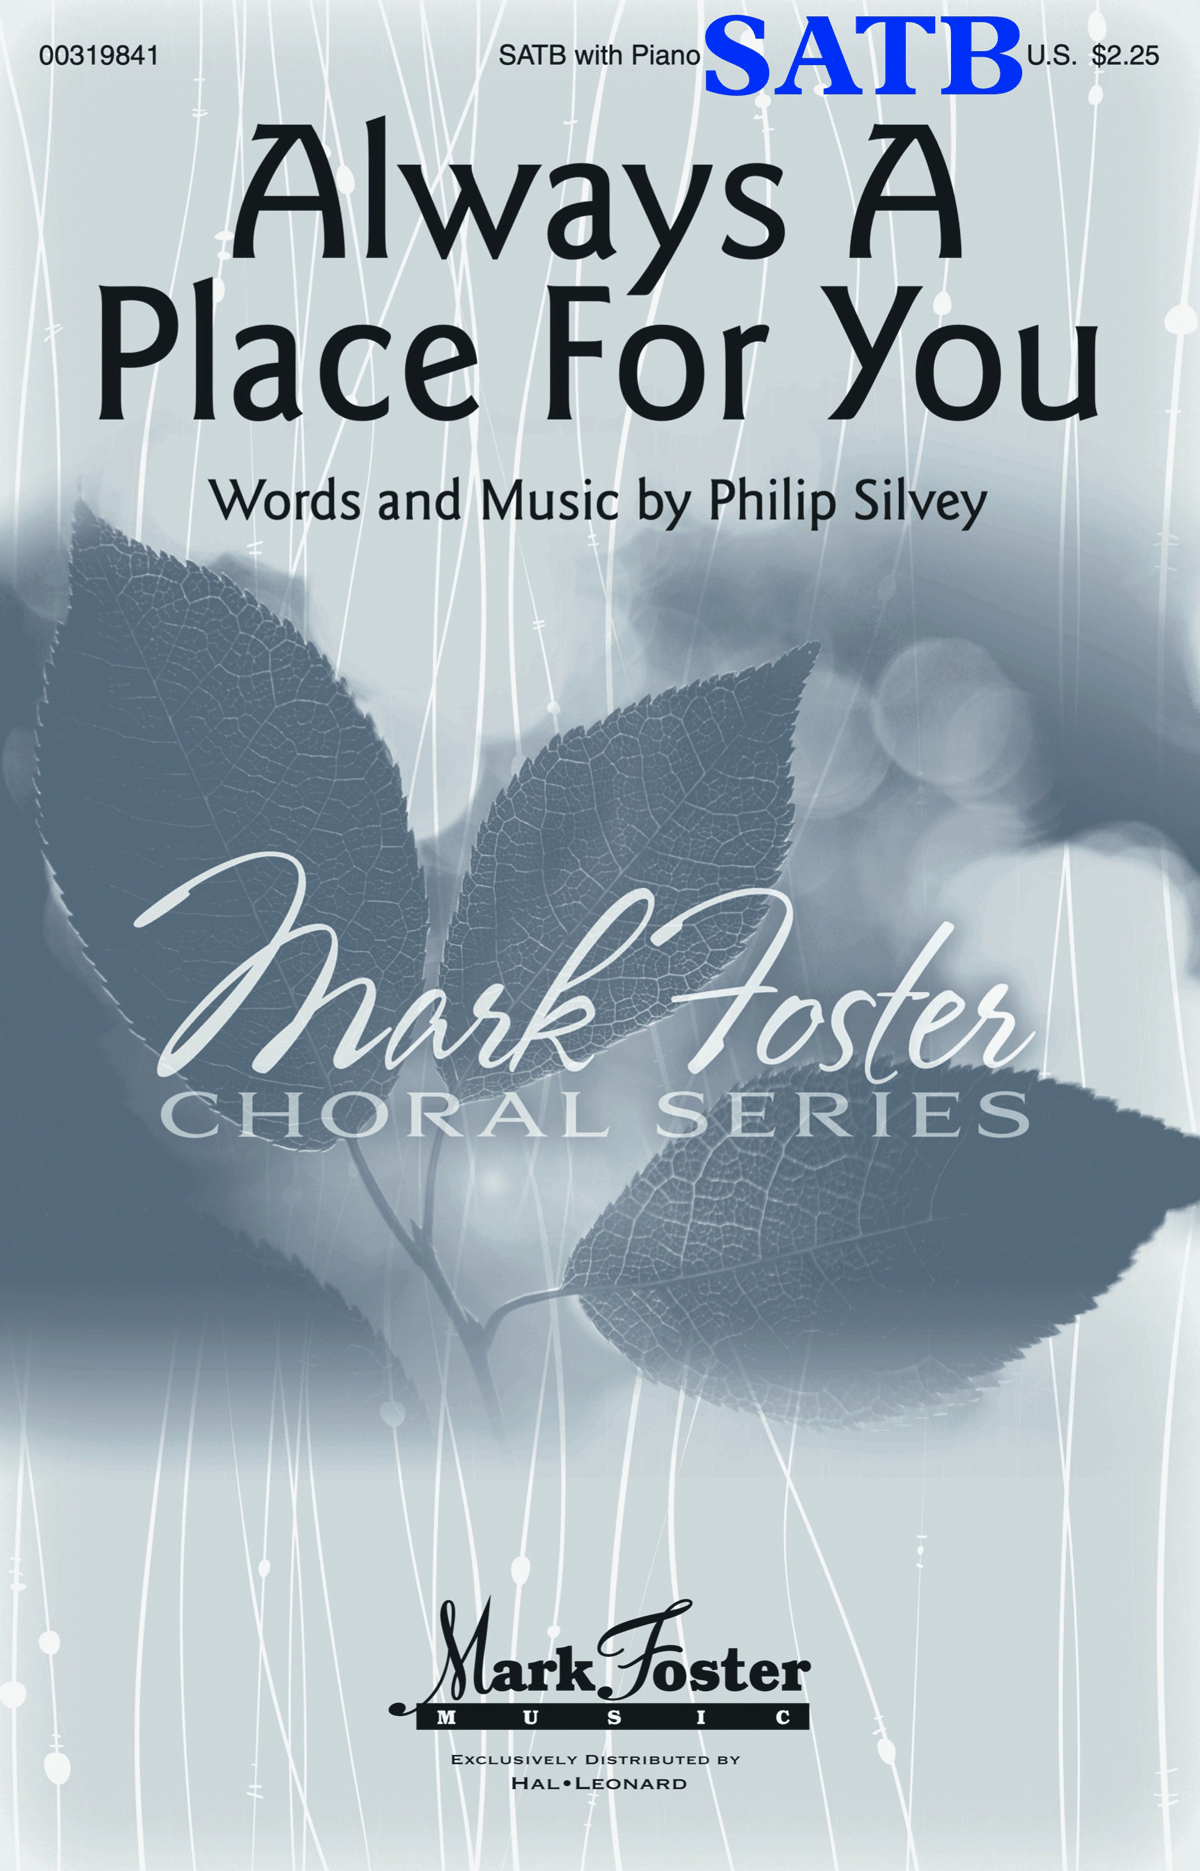 Always a Place for You - SATB - choral score cover